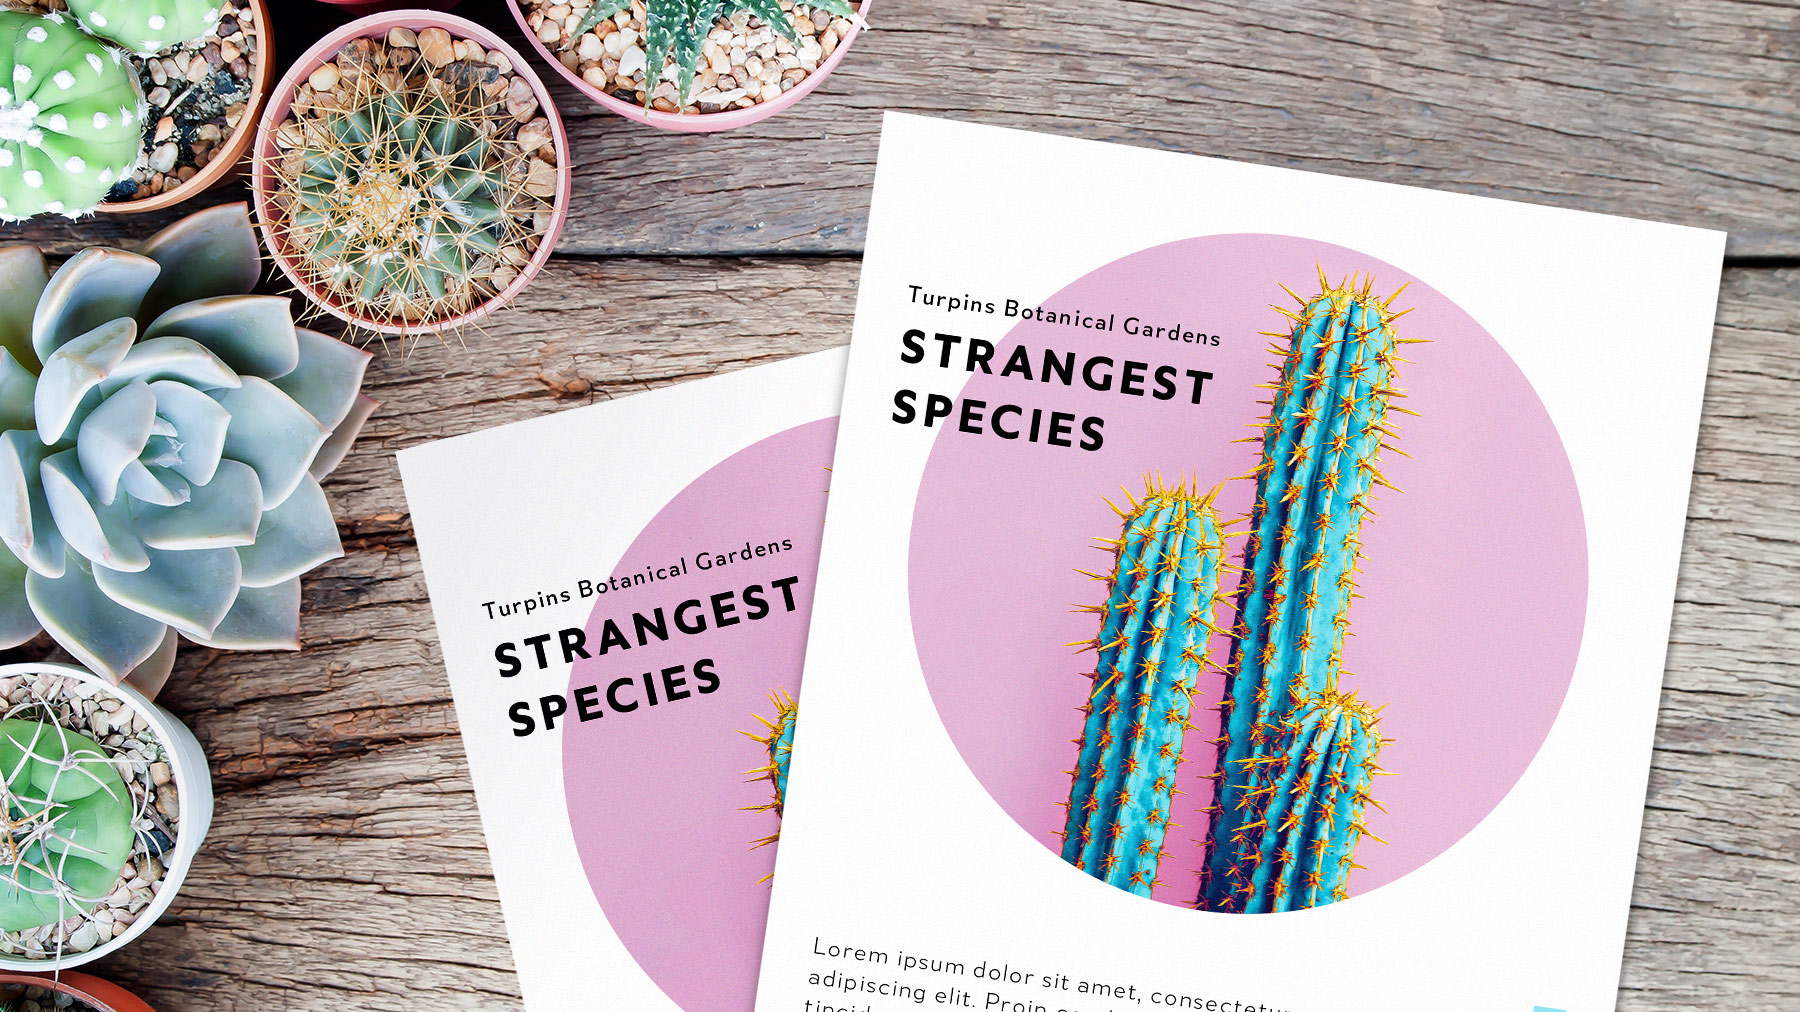 Erica Larson, Art Director For Adobe Studio, Shows How To Put Together A  Stylish, Eye-Catching Flyer In Just Five Easy Steps. Follow Simple  Techniques And